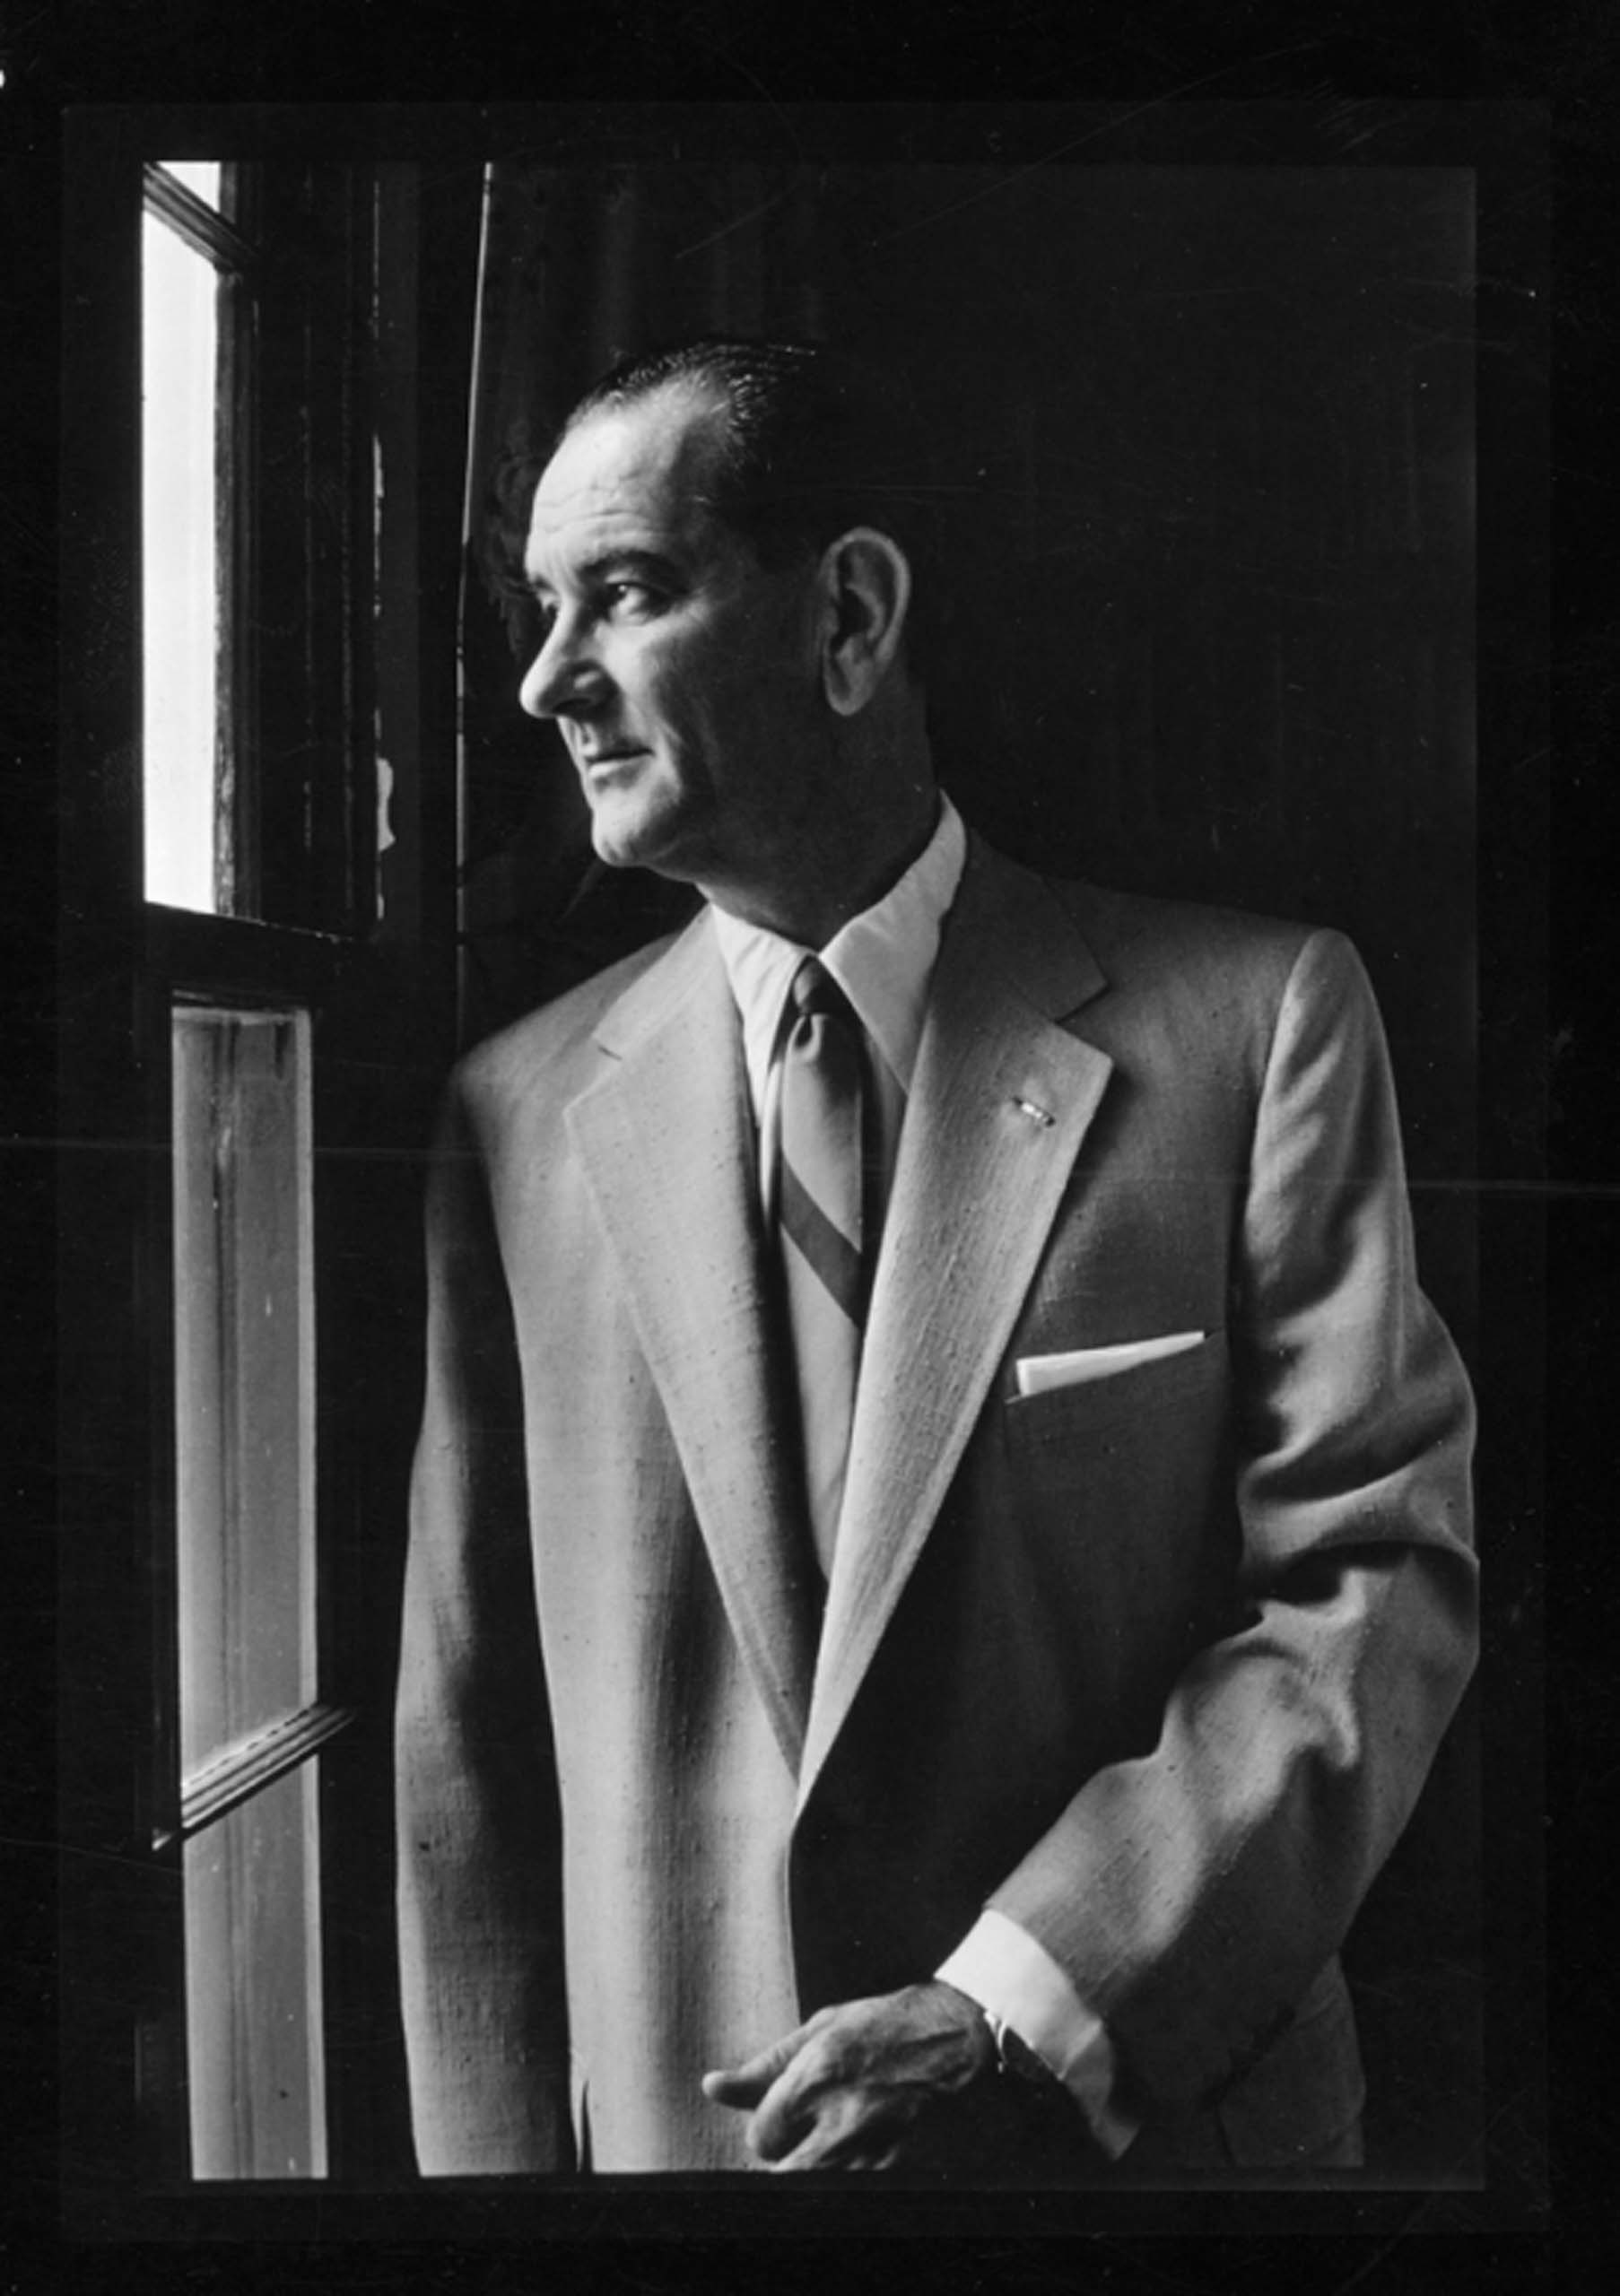 September, 1955. Lyndon B. Johnson, half length portrait, left profile, looking out a window.